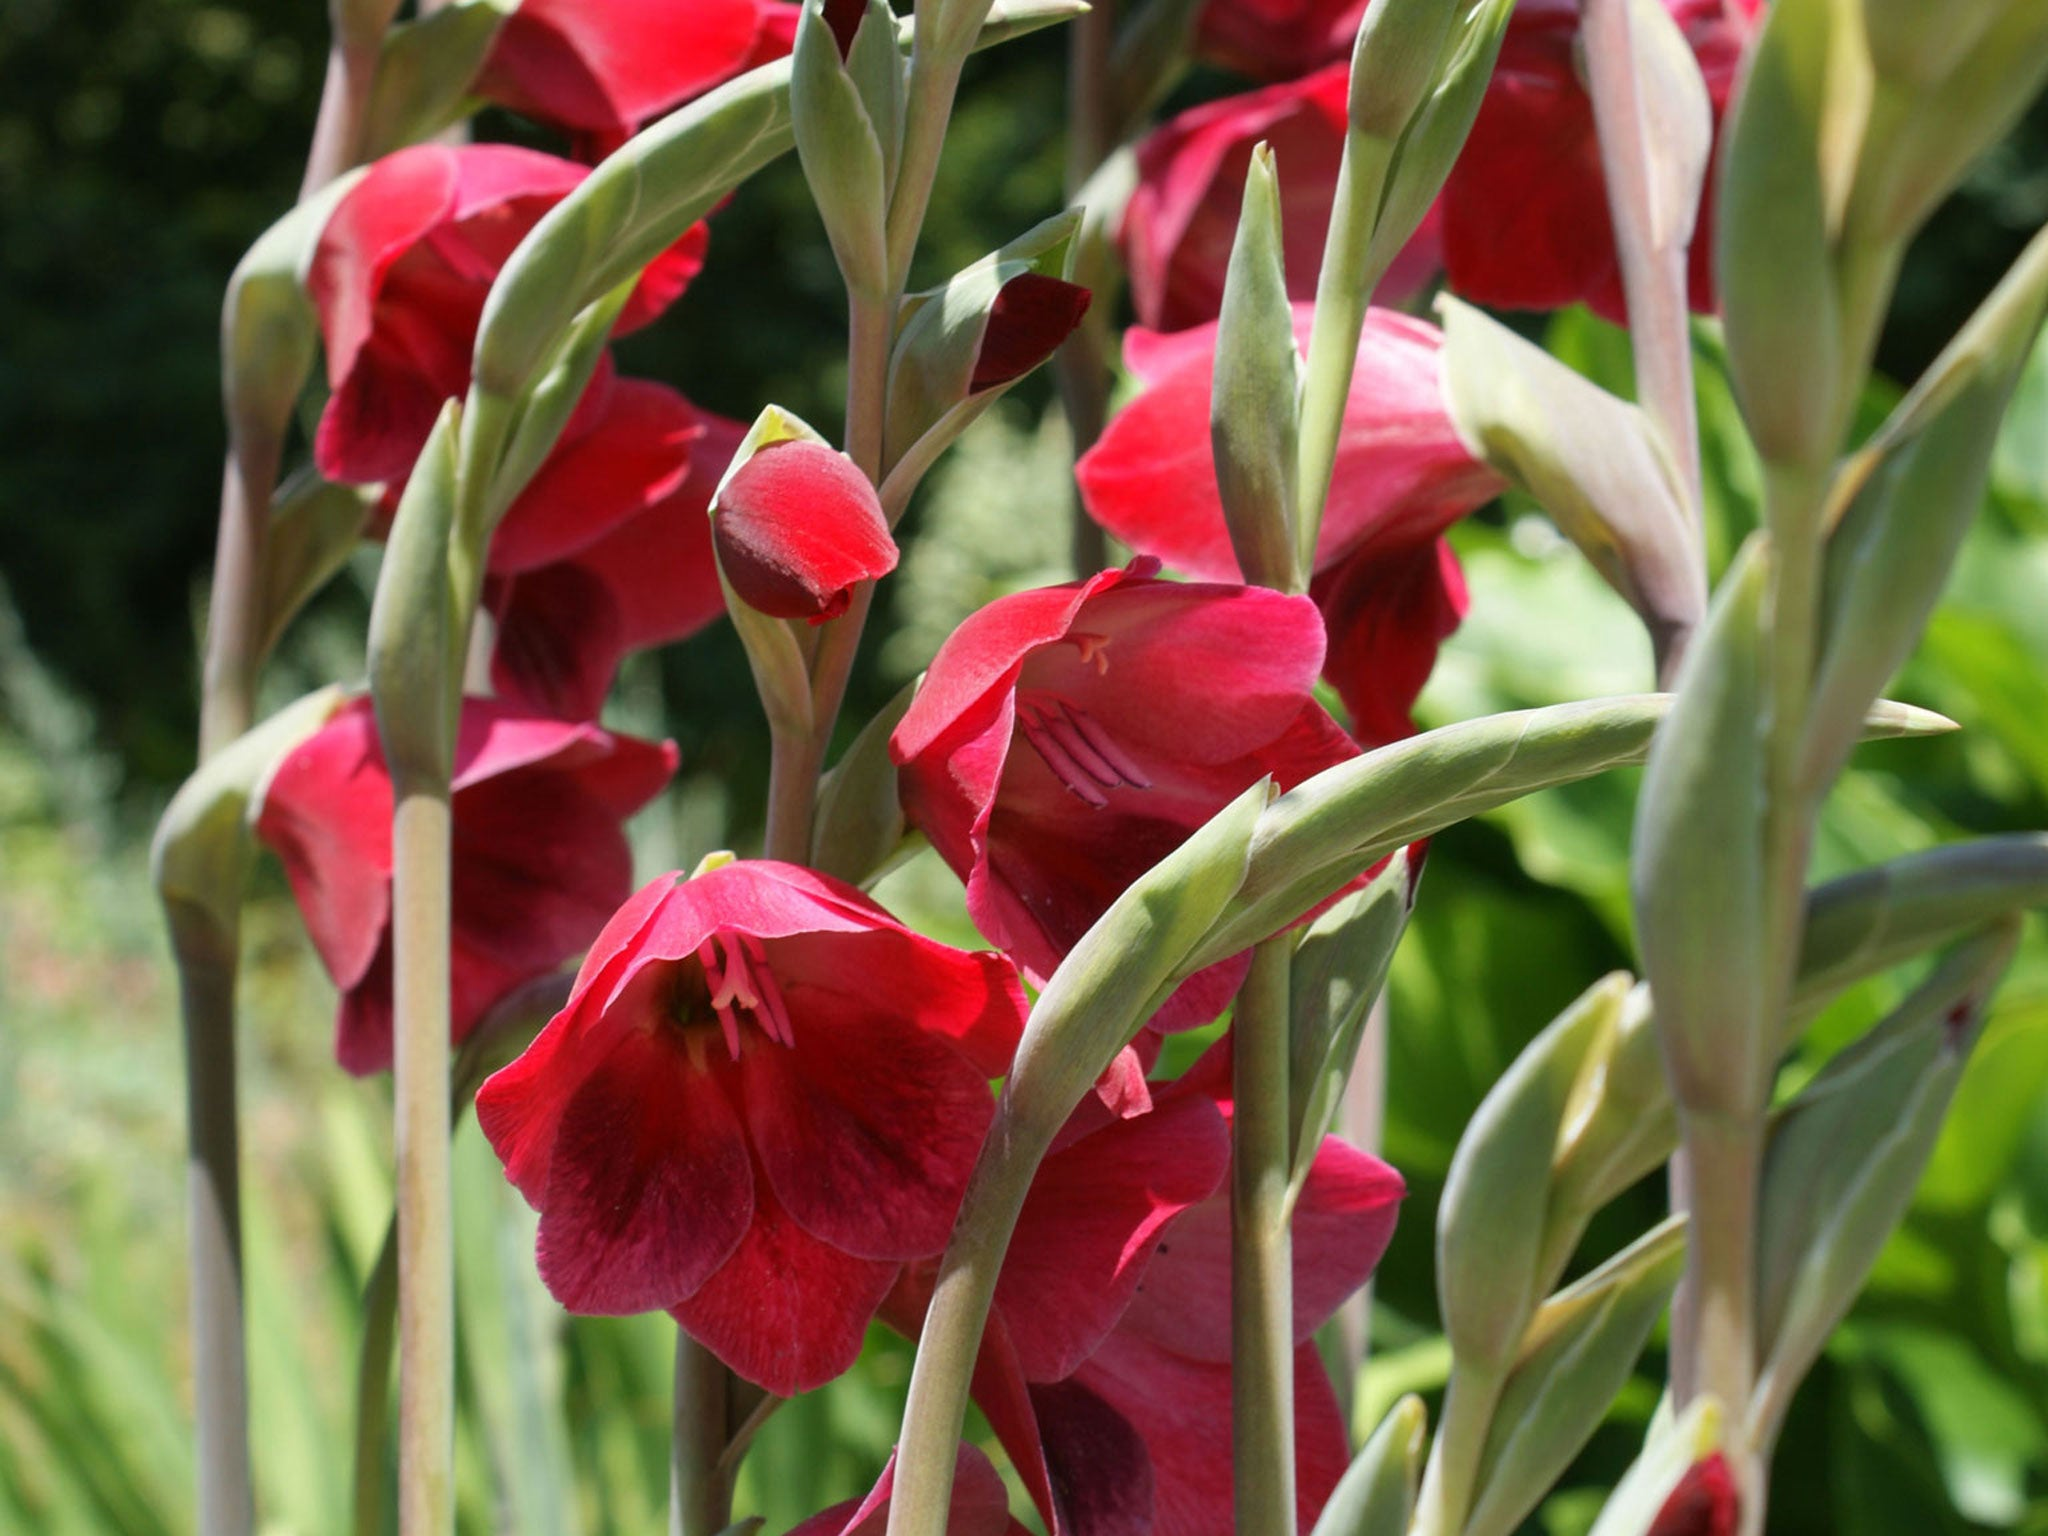 Gladioli Are Among The Best Bulbs To Plant Now For Flowers